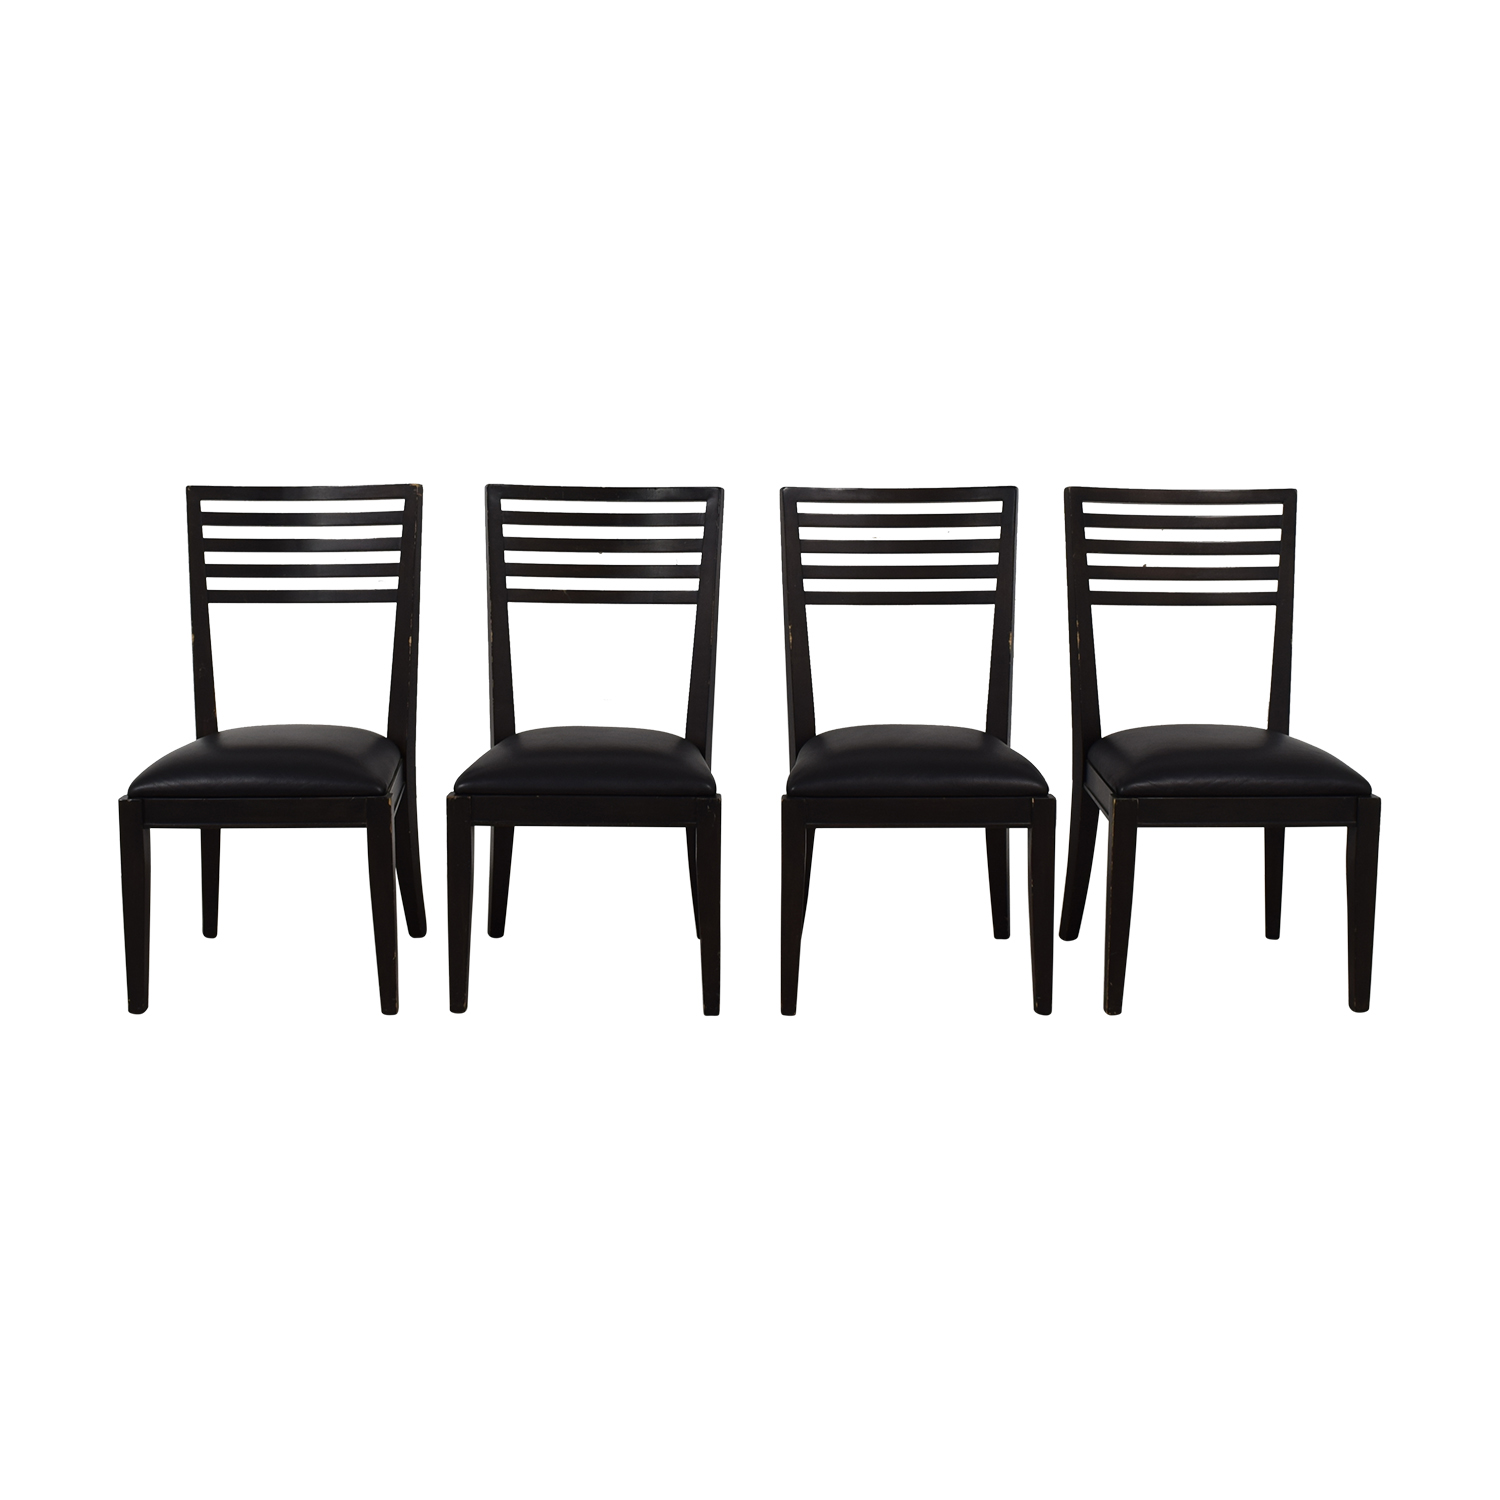 buy Crate & Barrel Crate & Barrel Black Dining Chairs online